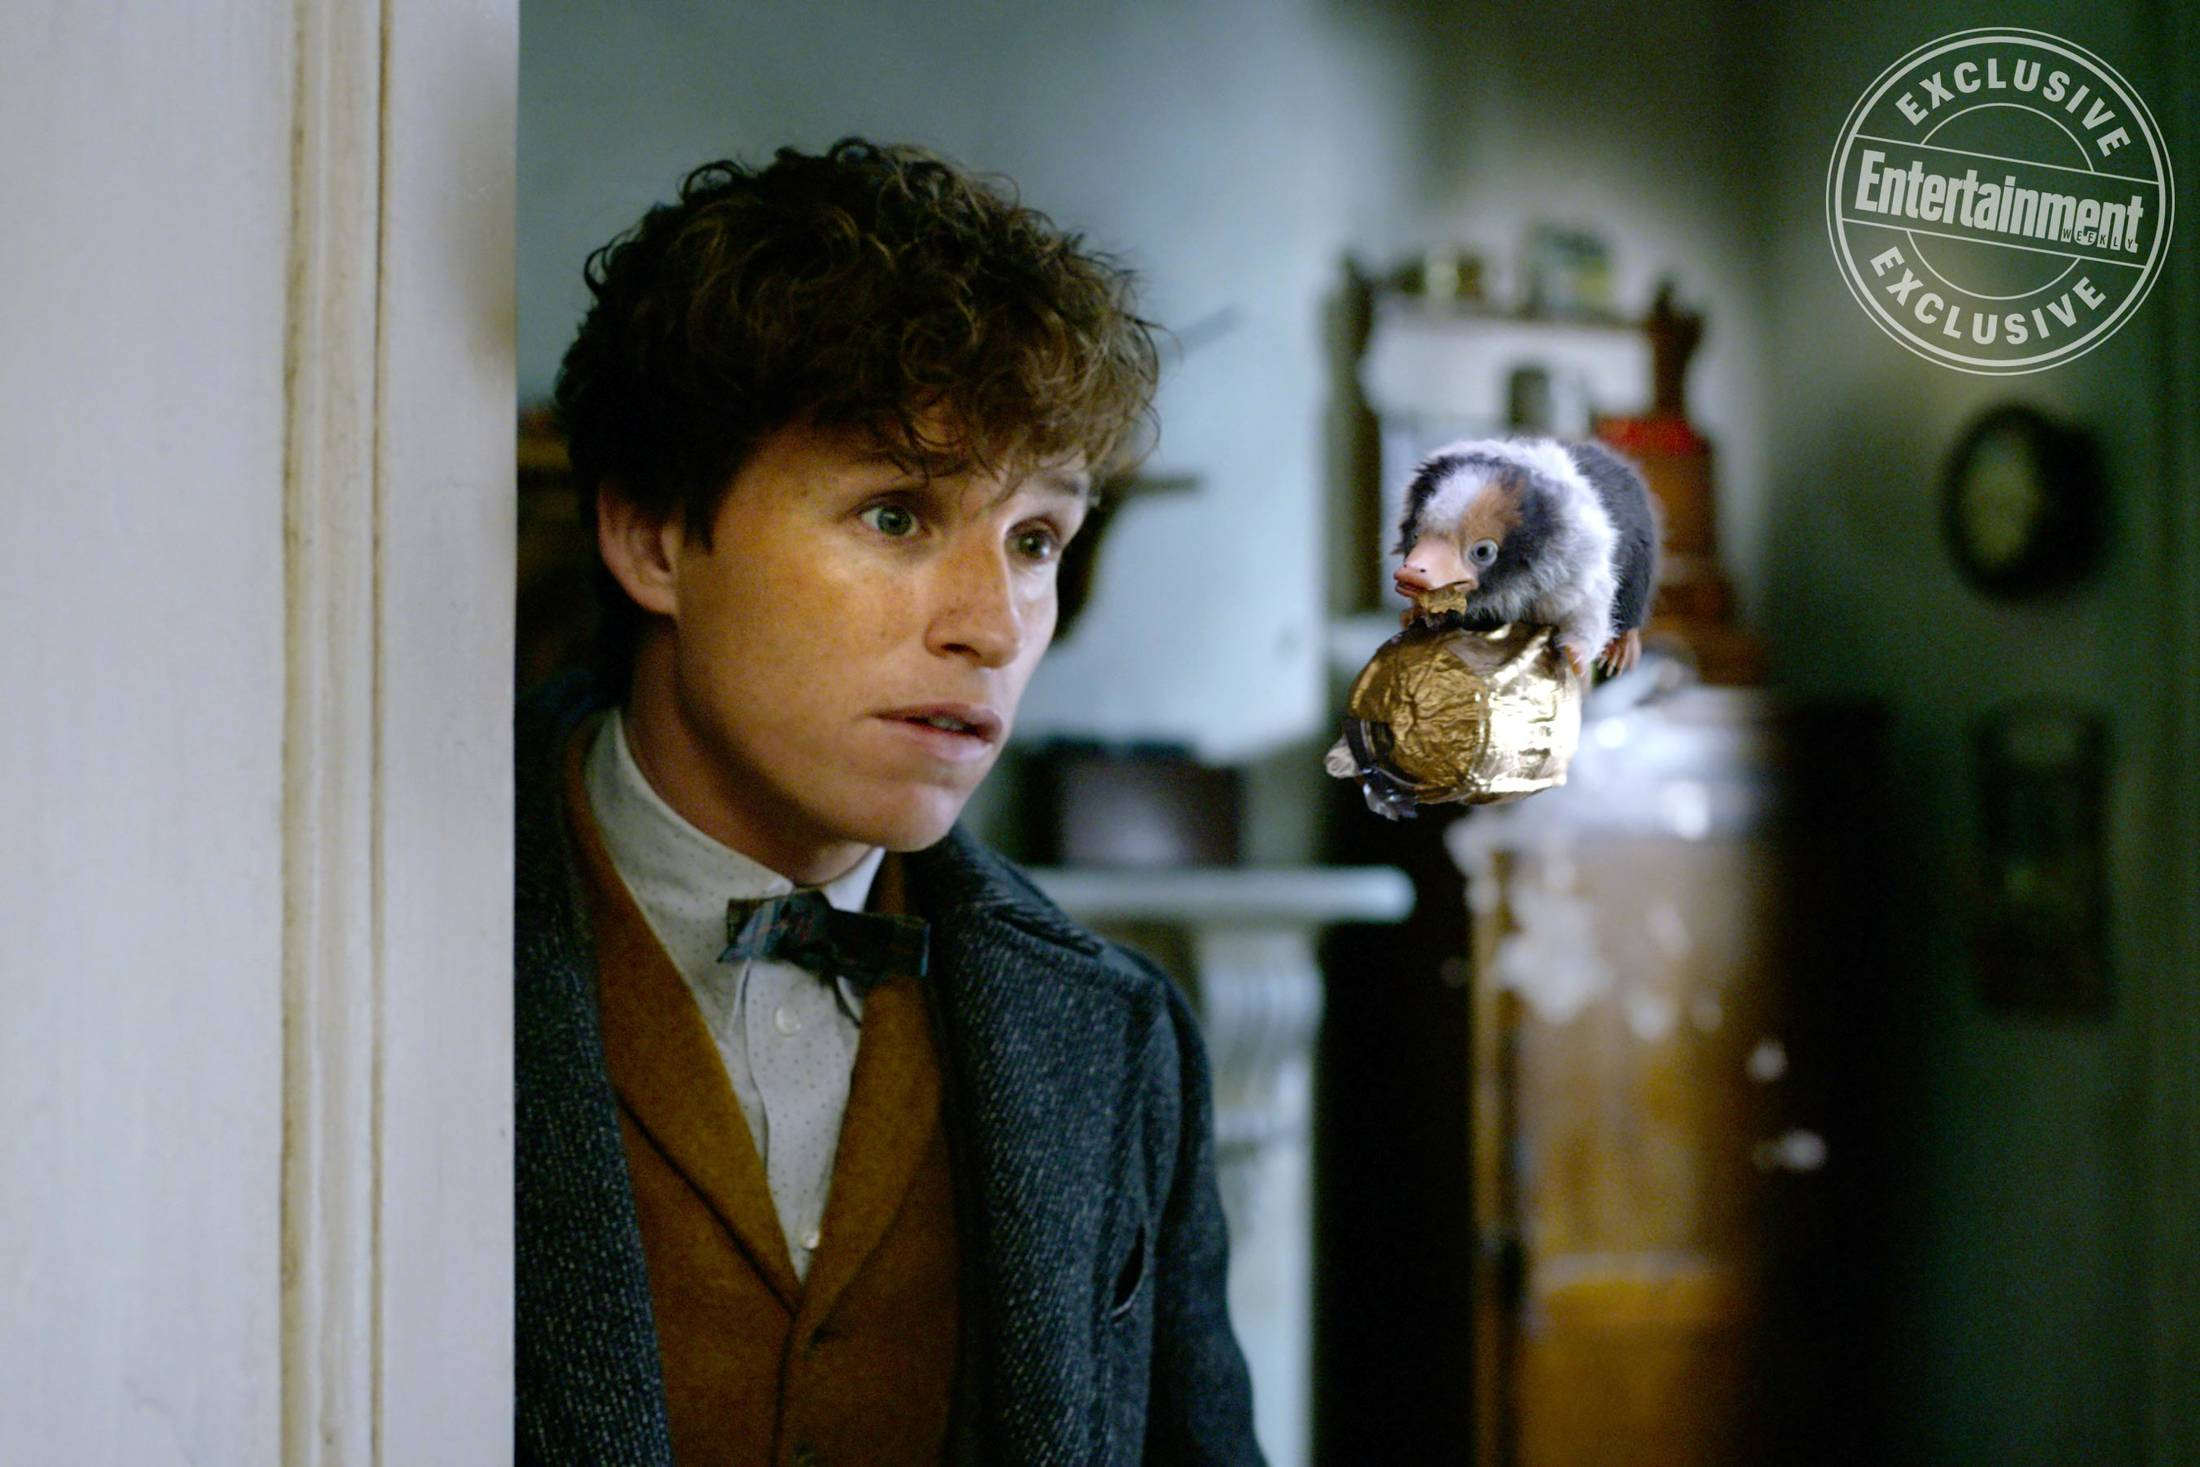 """Fantastic Beasts: The Crimes of Grindelwald"": Newt Scamander (Eddie Redmayne) with baby Niffler"